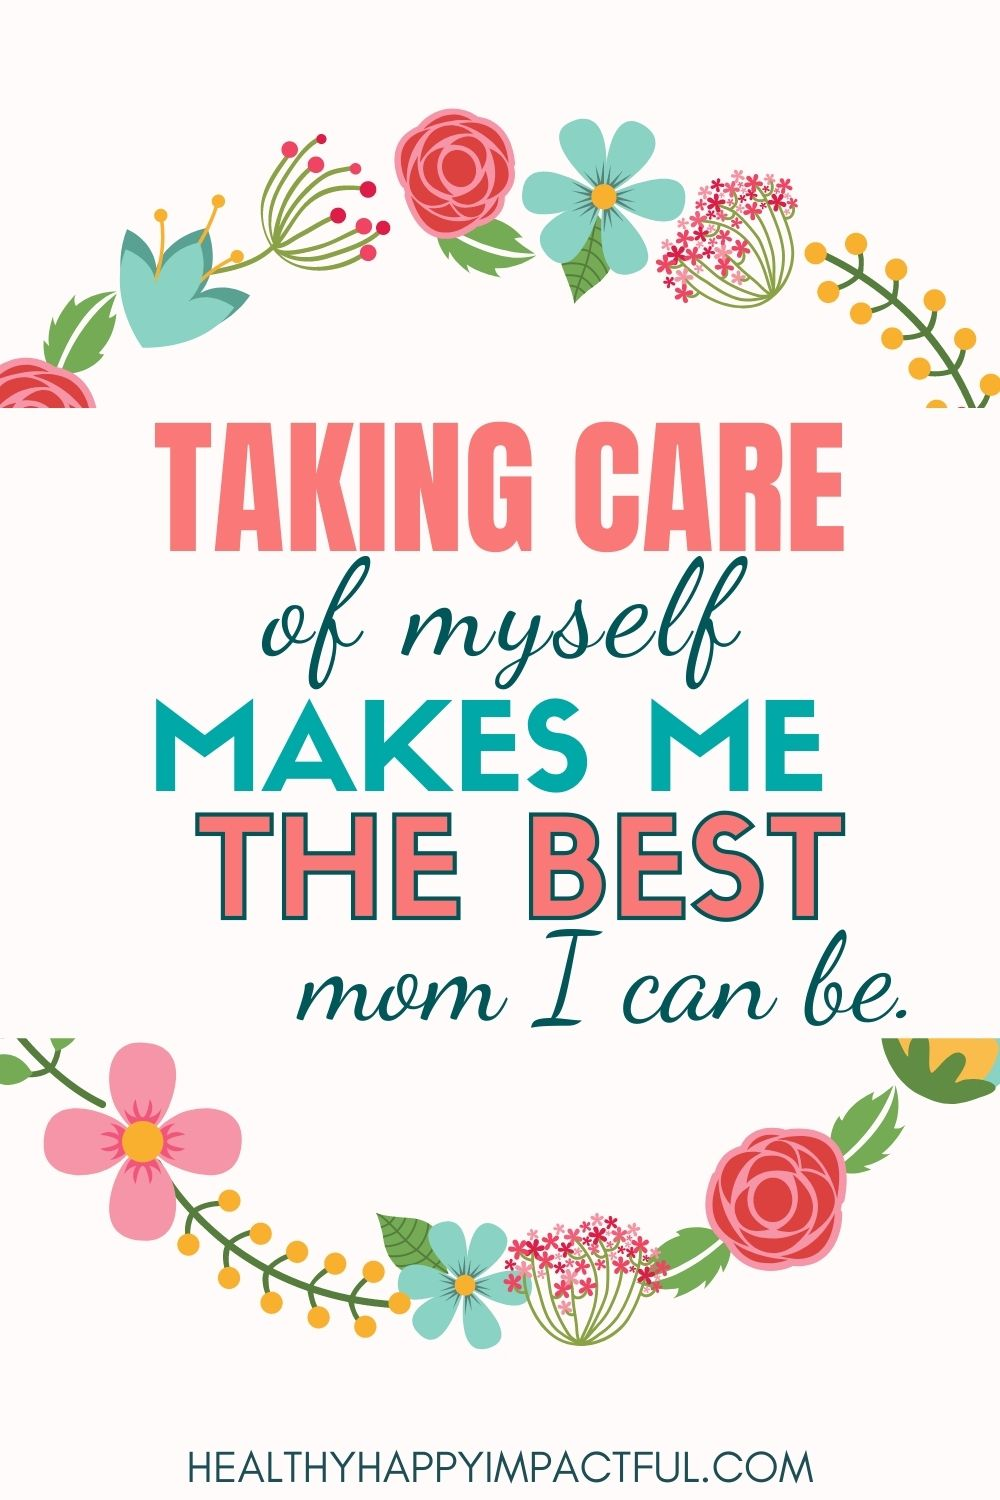 I am affirmations for female empowerment. Taking care of myself makes me the best mom I can be.